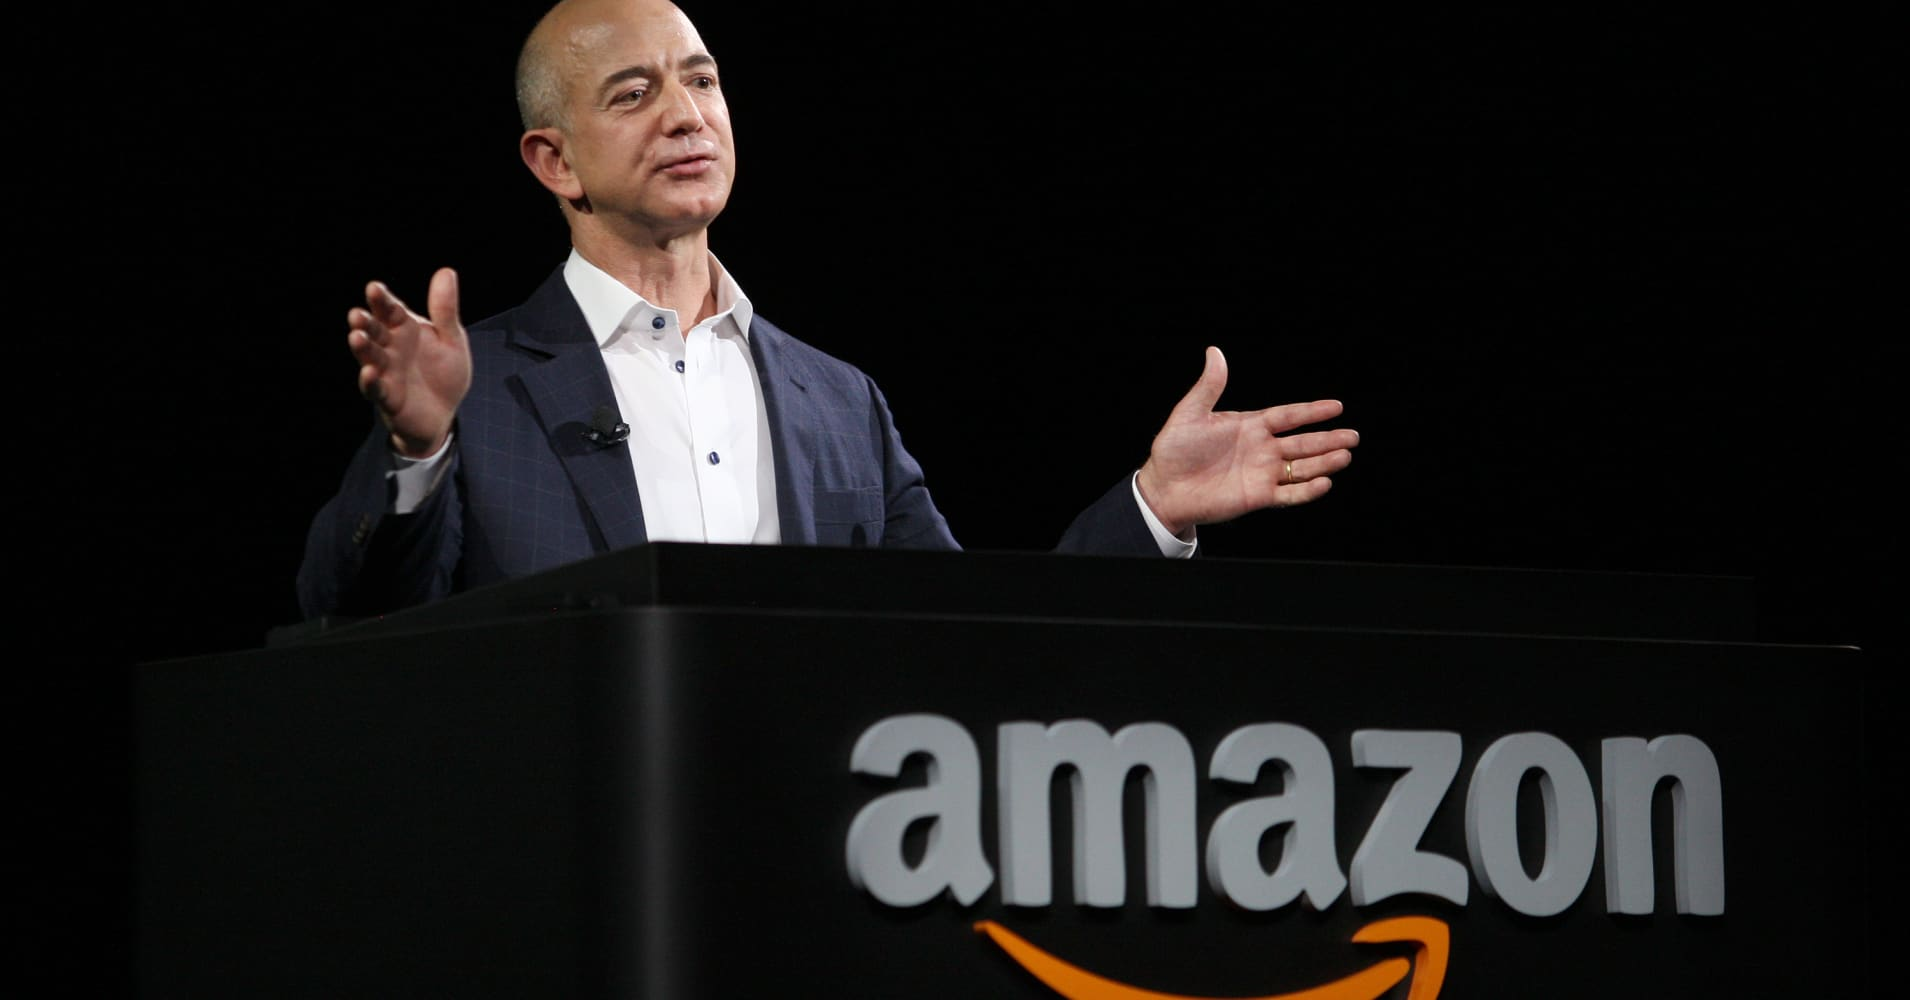 Amazon, Apple, and Alphabet are in a race to become the first trillion-dollar company - Munster